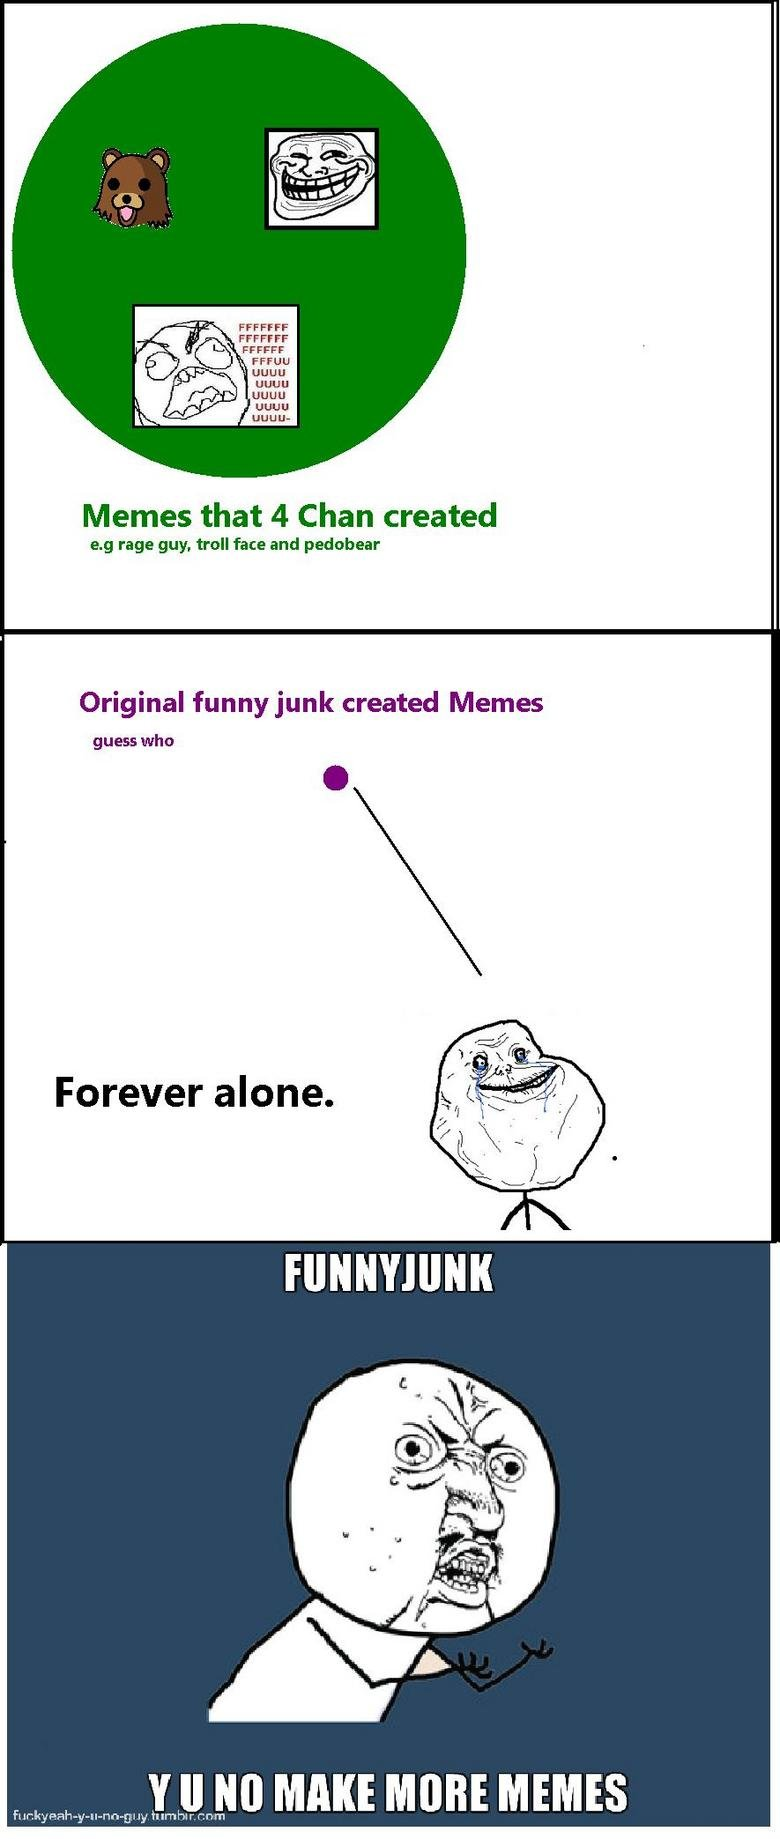 the truth. i made this a while bak it might be different now. Memes that 4 Chan created rage guy, troll face and pedabear Original funny junk created Memes gues